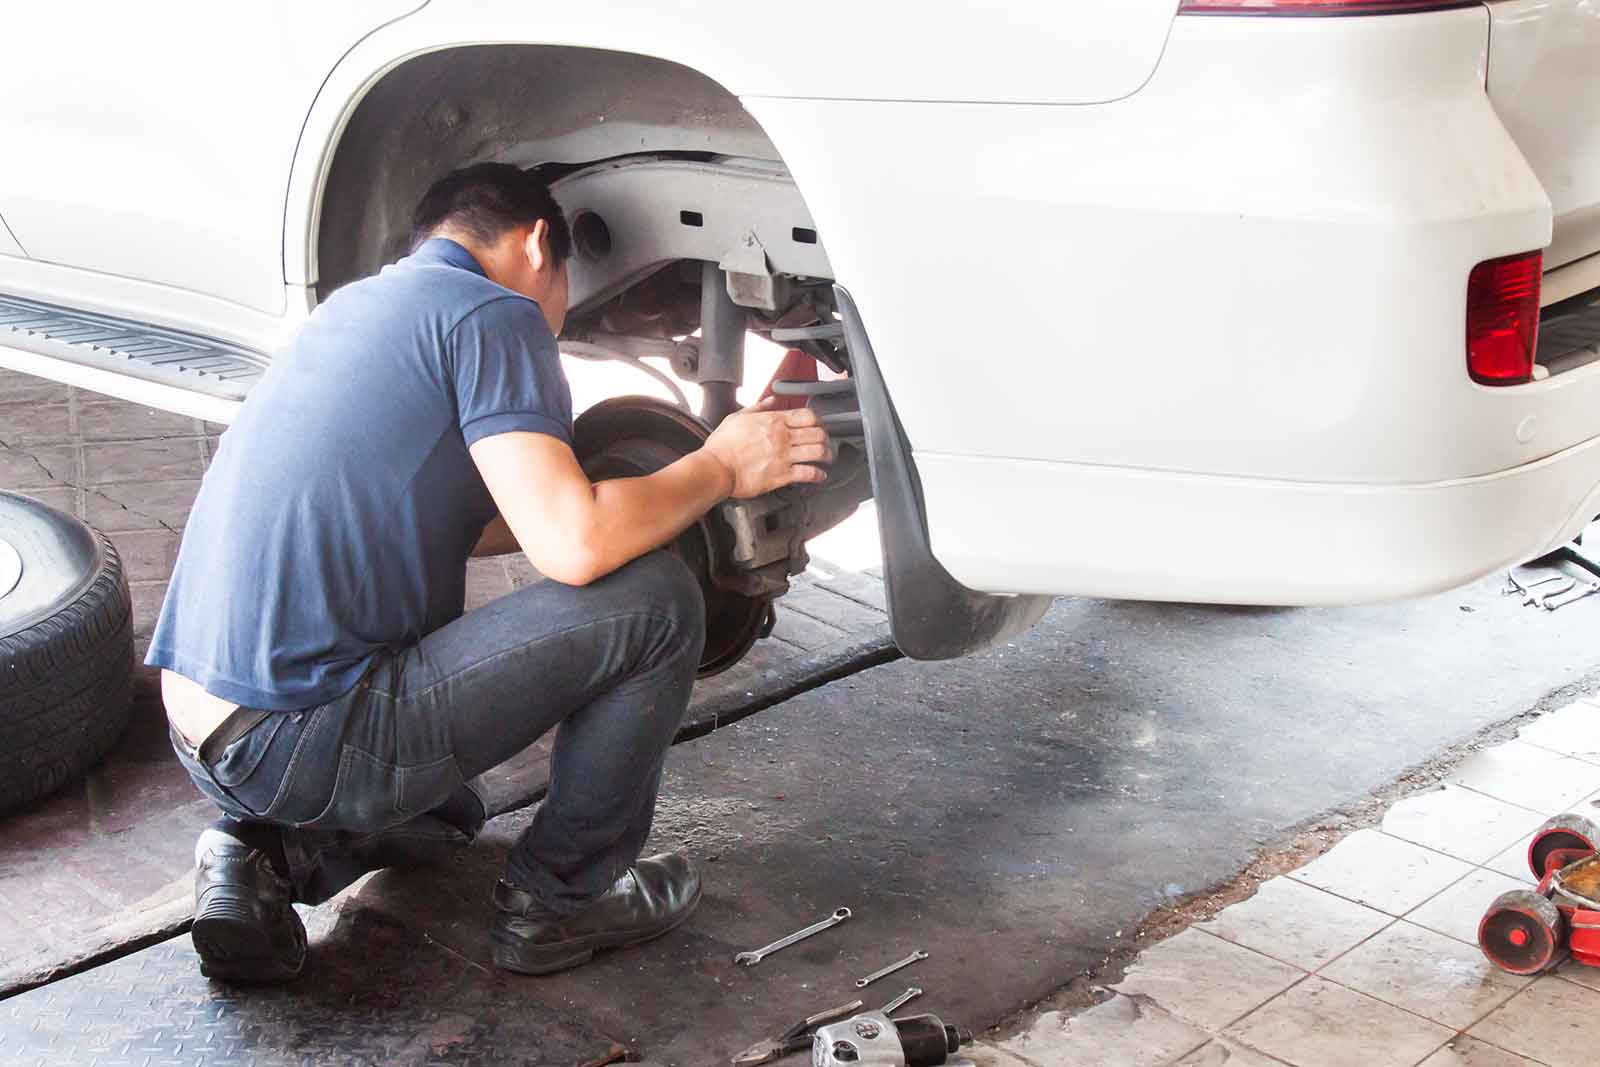 Suspension and brakes inspection of van by male mechanic in blue shirt and jeans